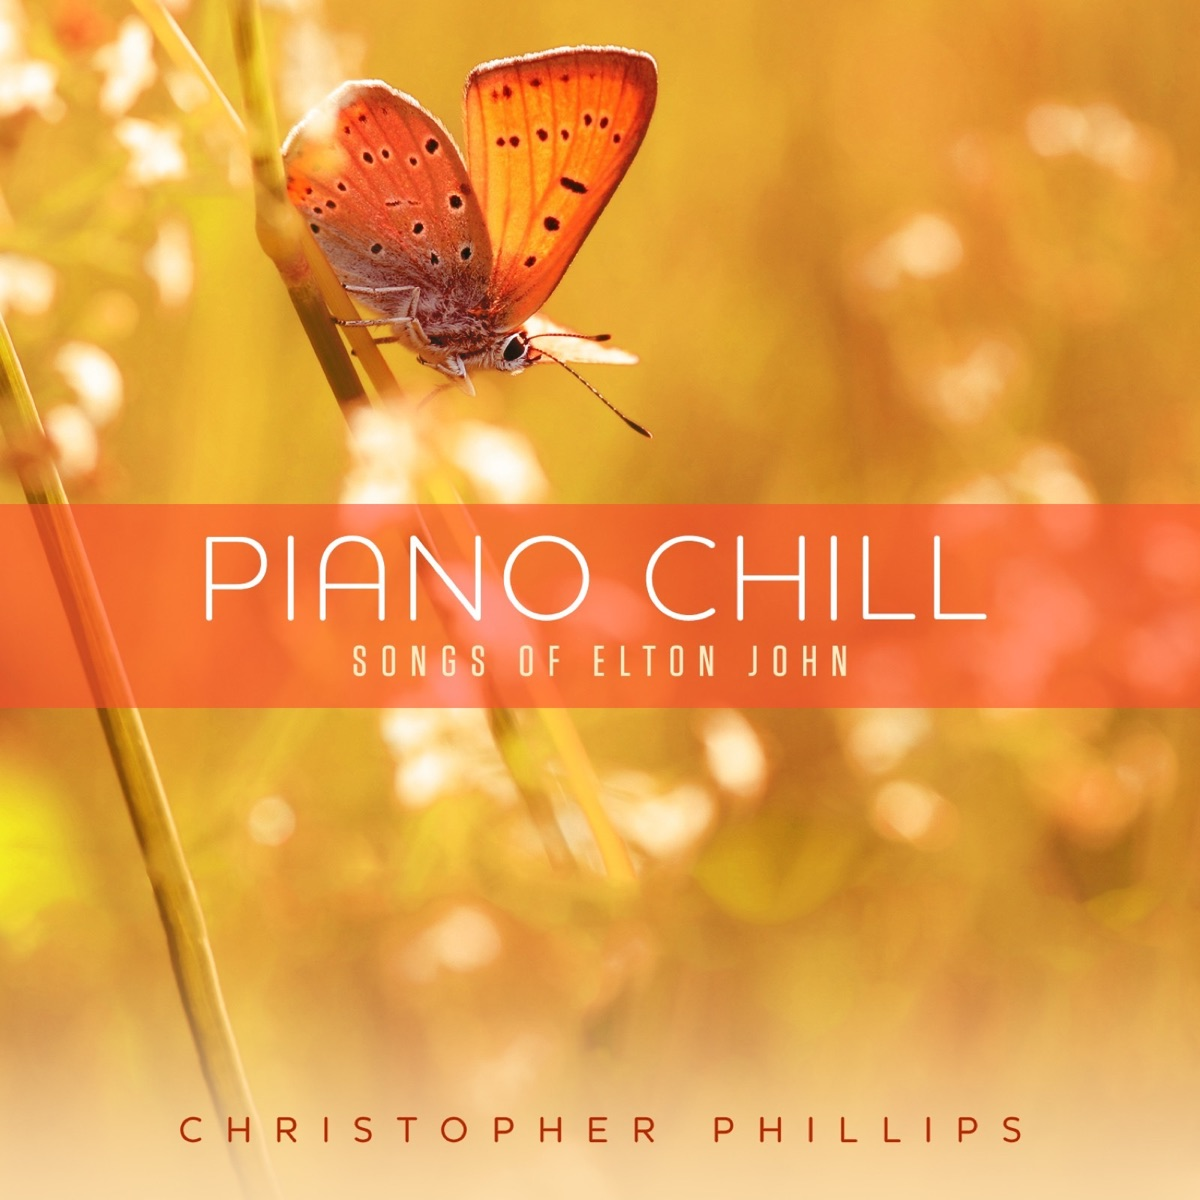 Piano Chill Songs of Elton John Christopher Phillips CD cover